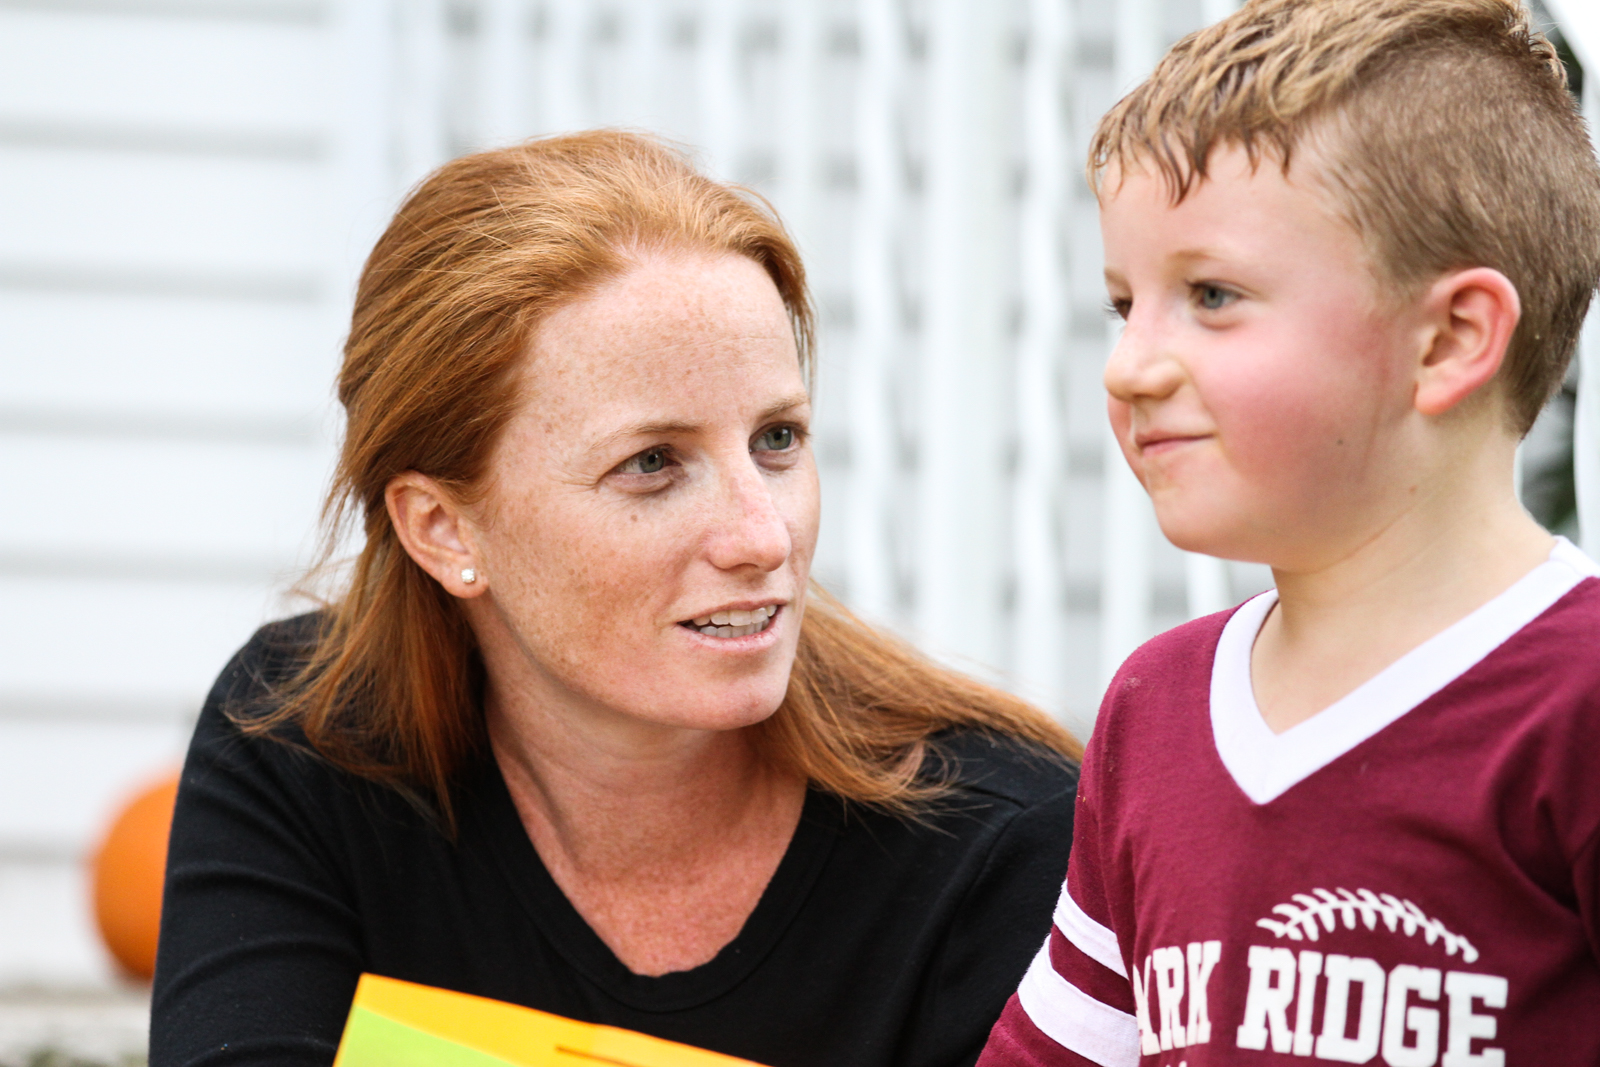 Woman asks boy questions while boy ponders